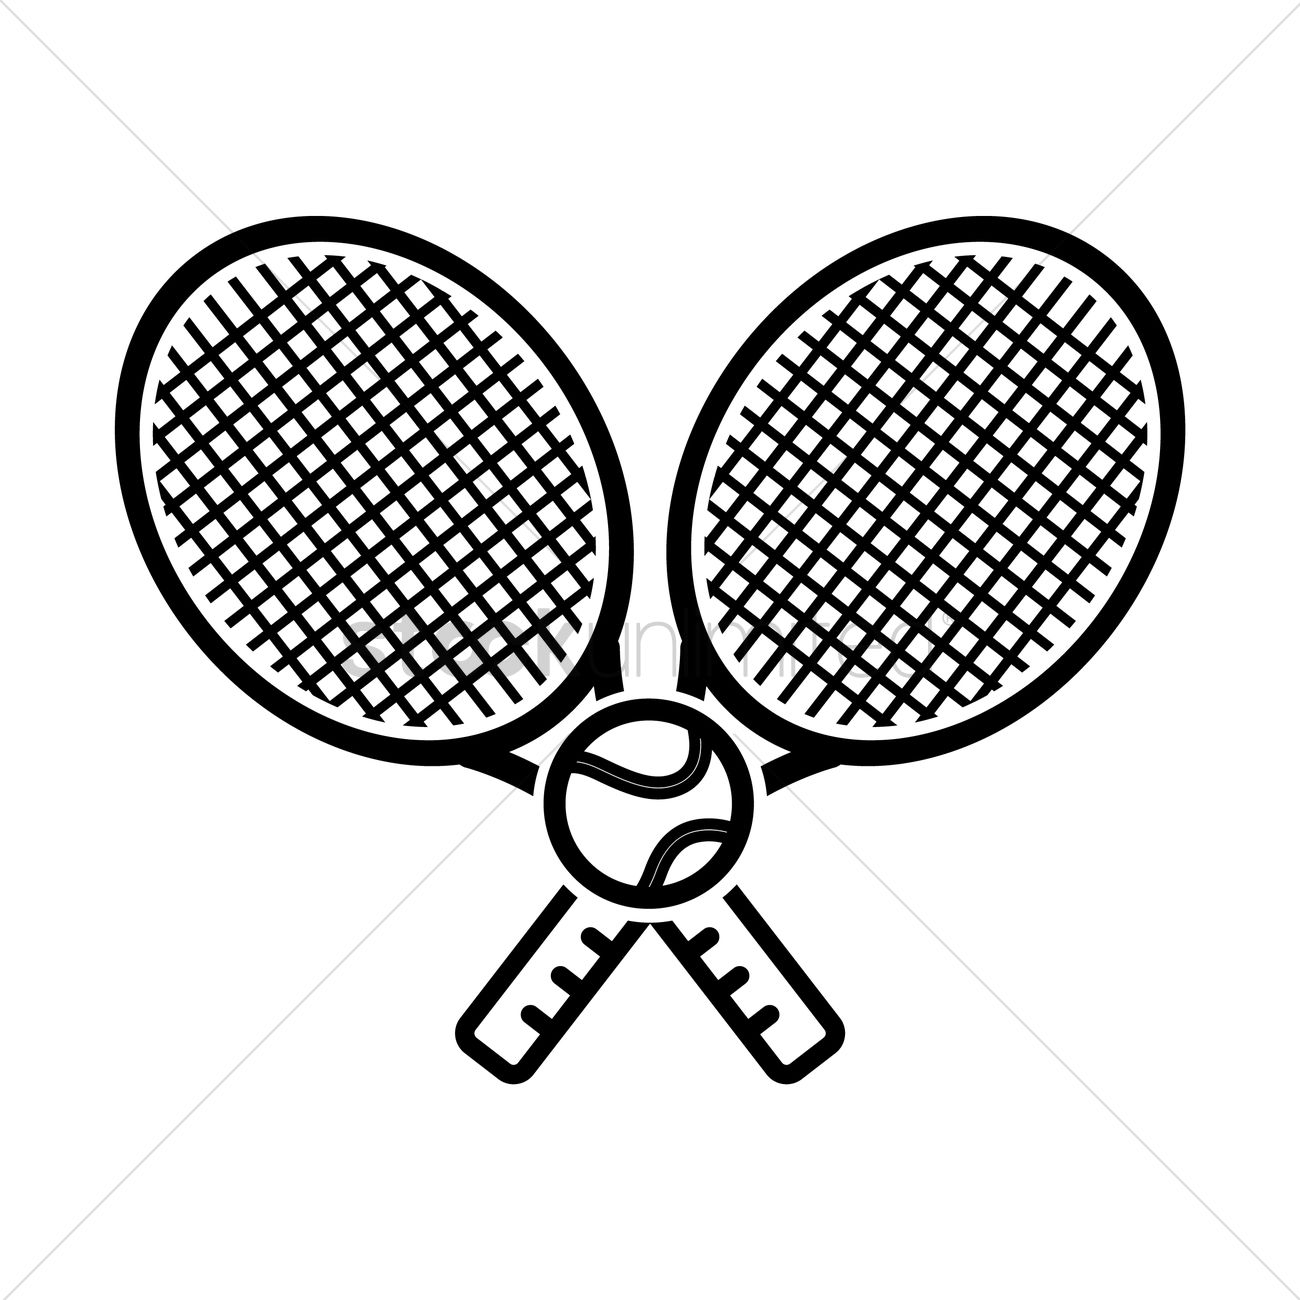 Two Tennis Rackets With Tennis Ball Vector Image 1984783